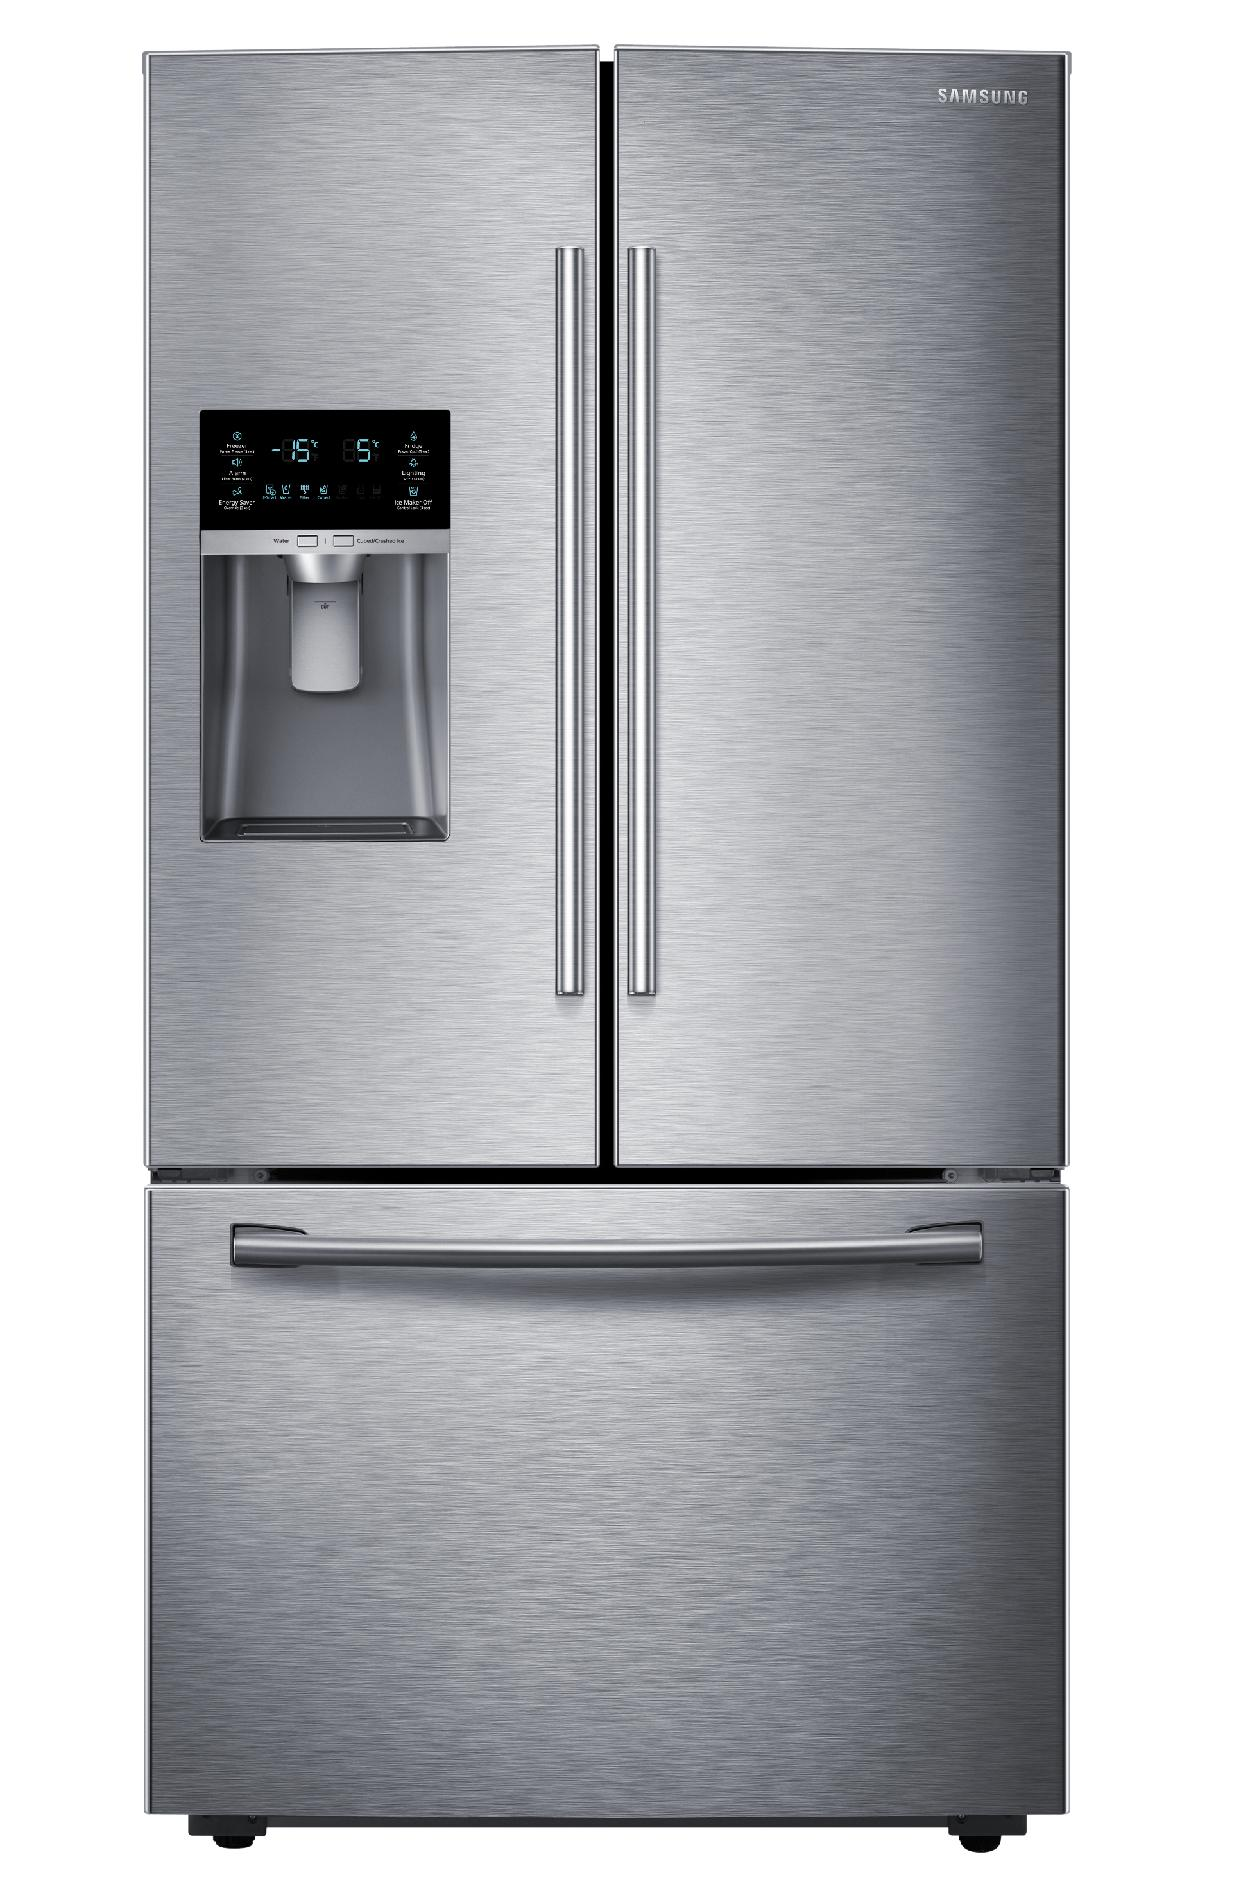 Samsung RF23HCEDBSR/AA 22.5 cu. ft. Counter-Depth French Door Refrigerator - Stainless Steel